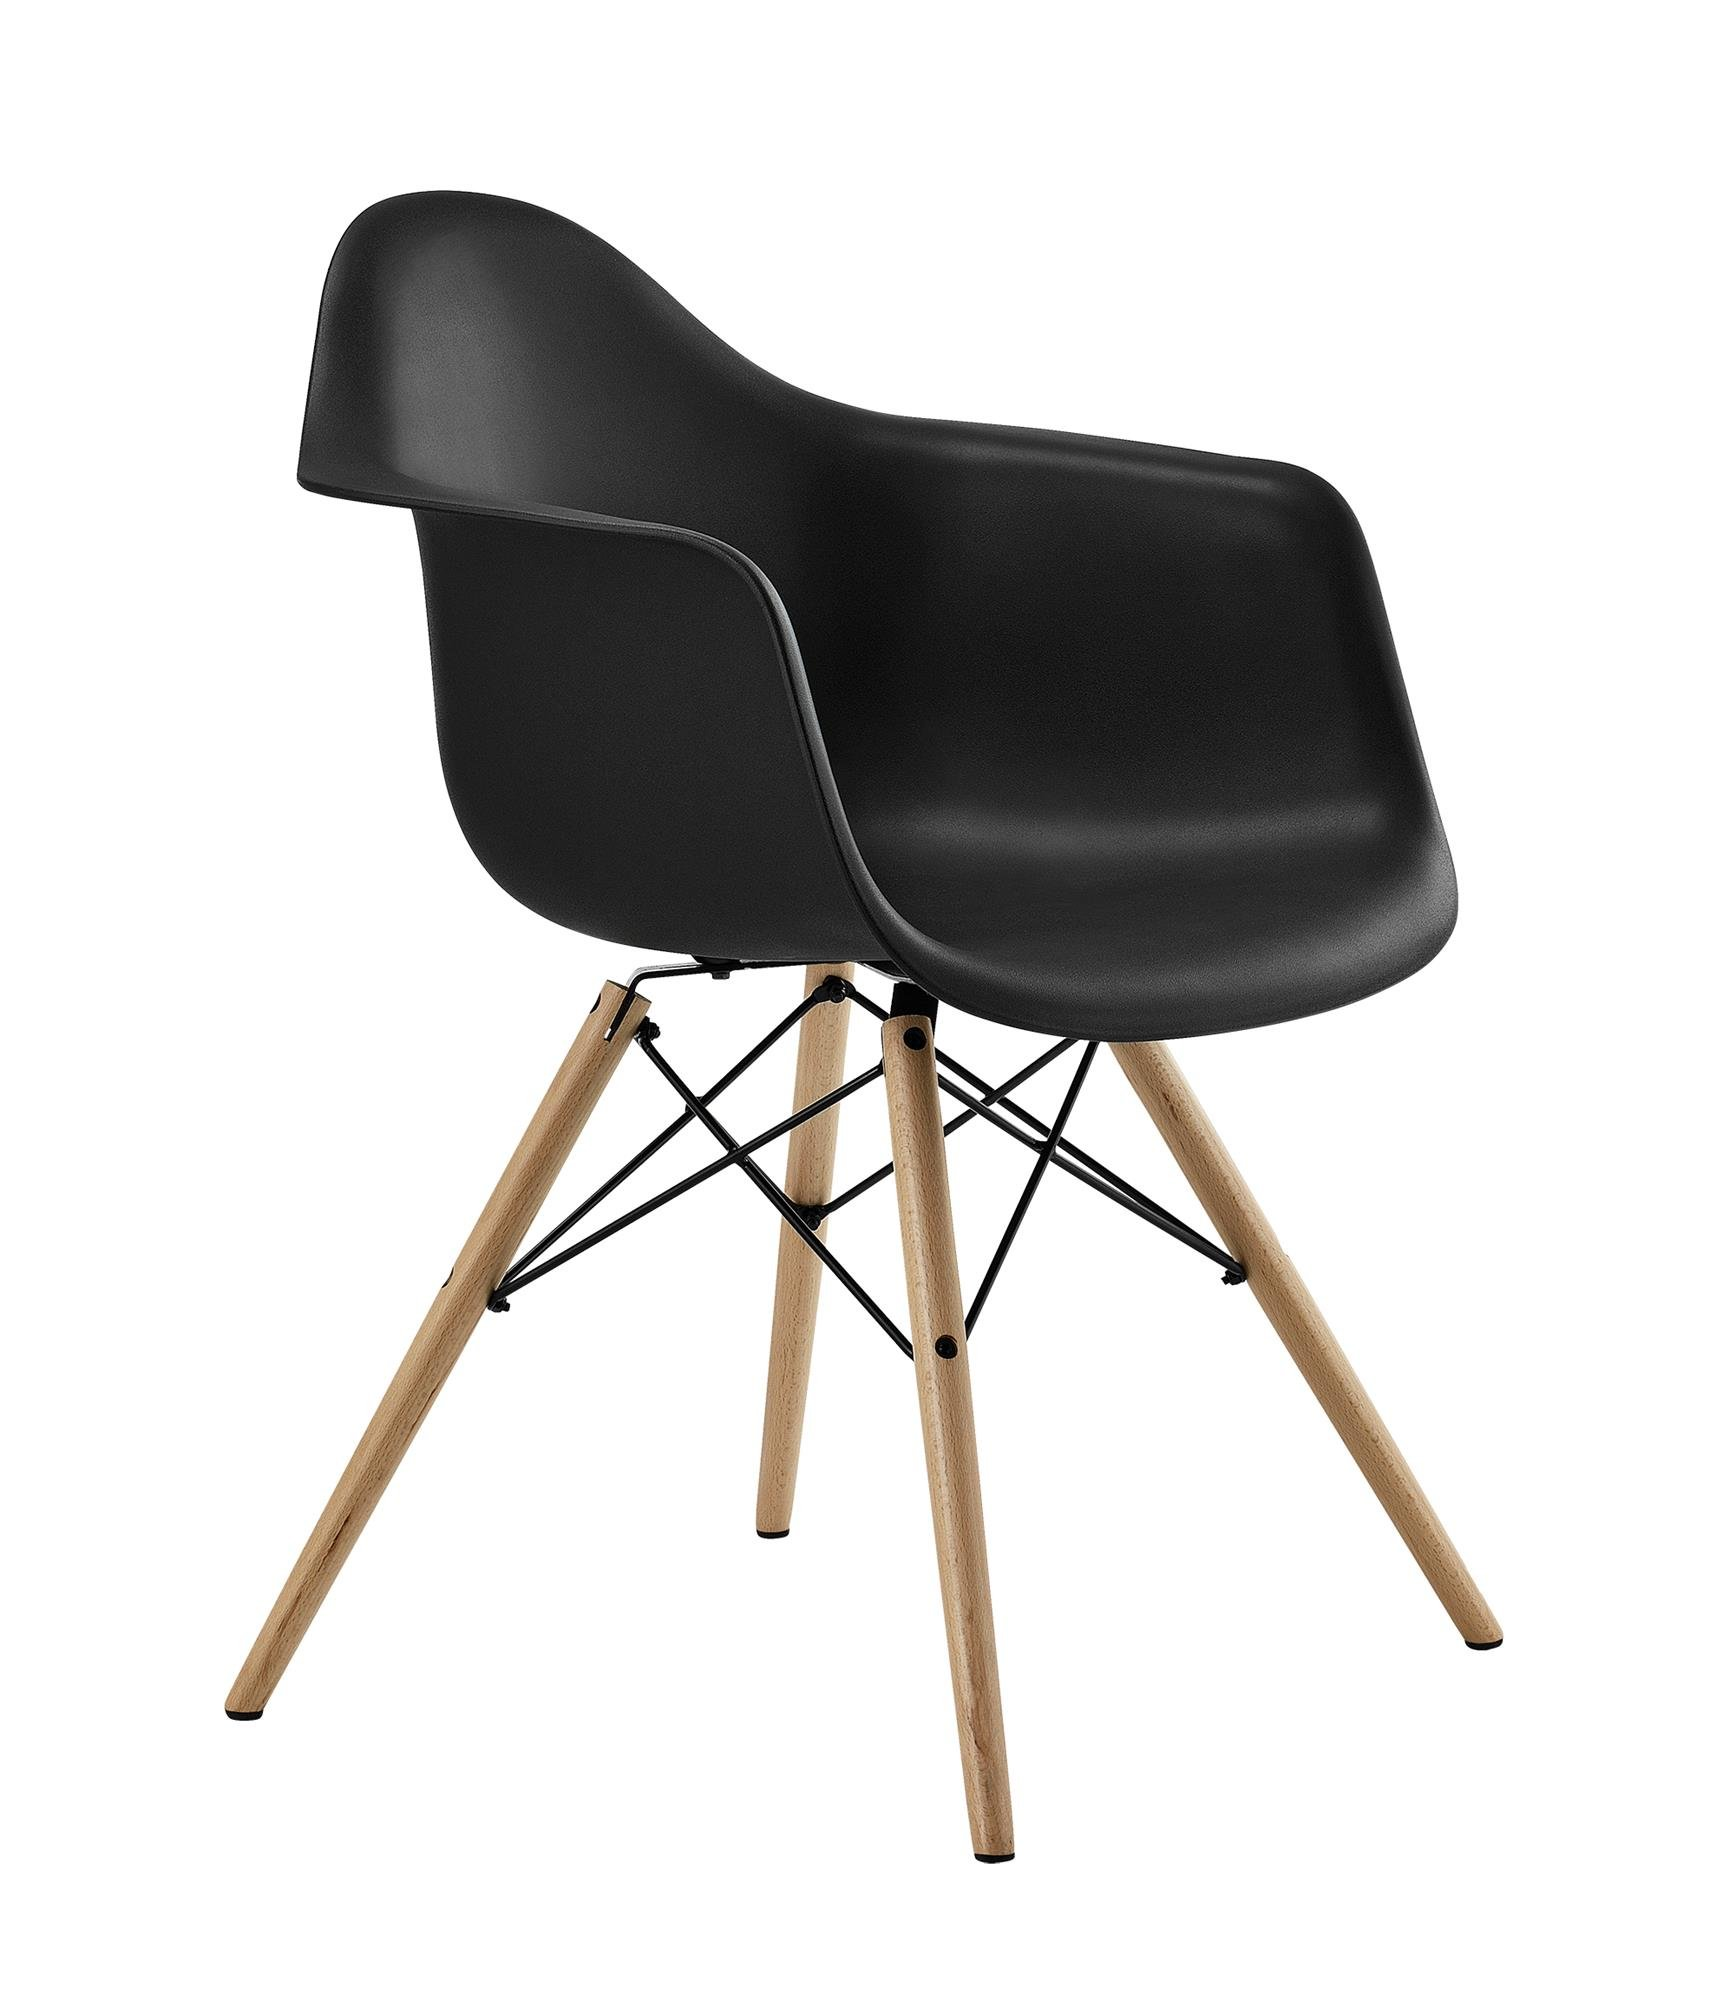 DHP Mid Century Modern Chair with Molded Arms and Wood Legs, Black by DHP